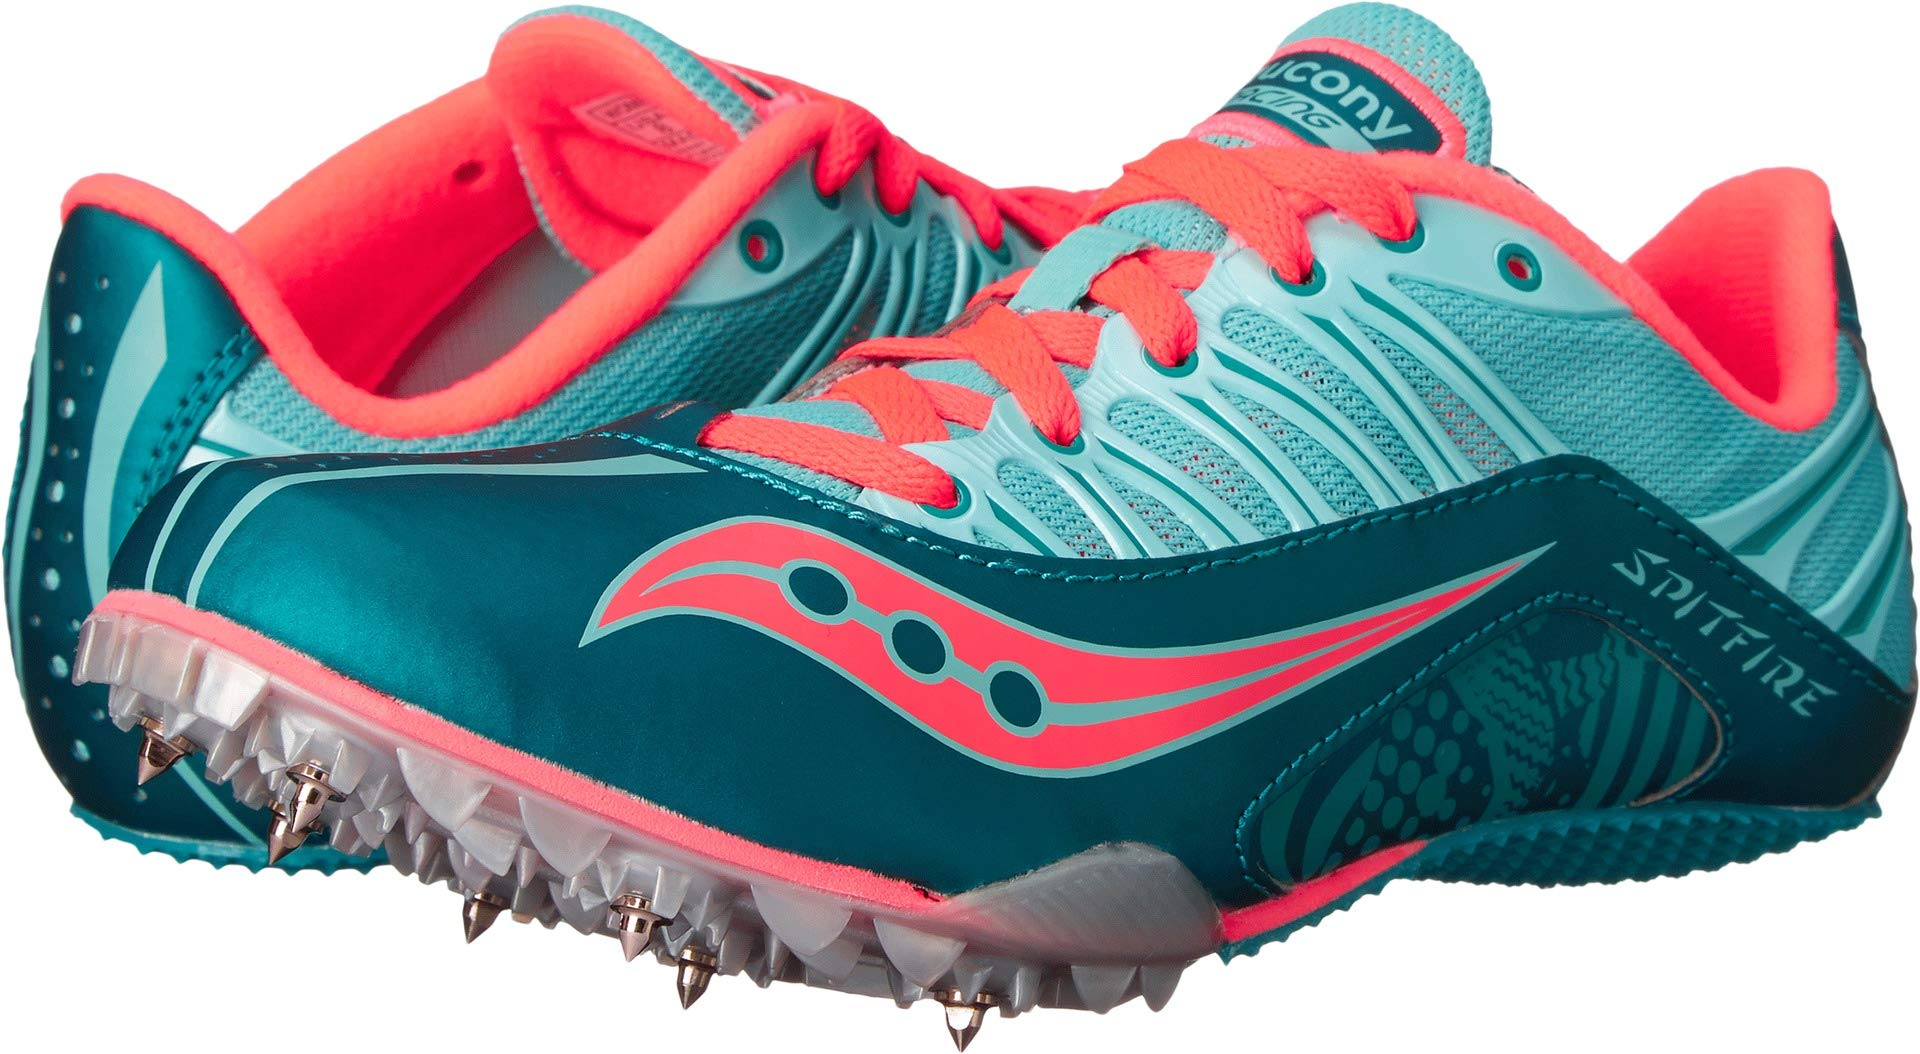 Saucony Women's Spitfire Spike Shoe, Teal/Coral, 10.5 M US by Saucony (Image #1)